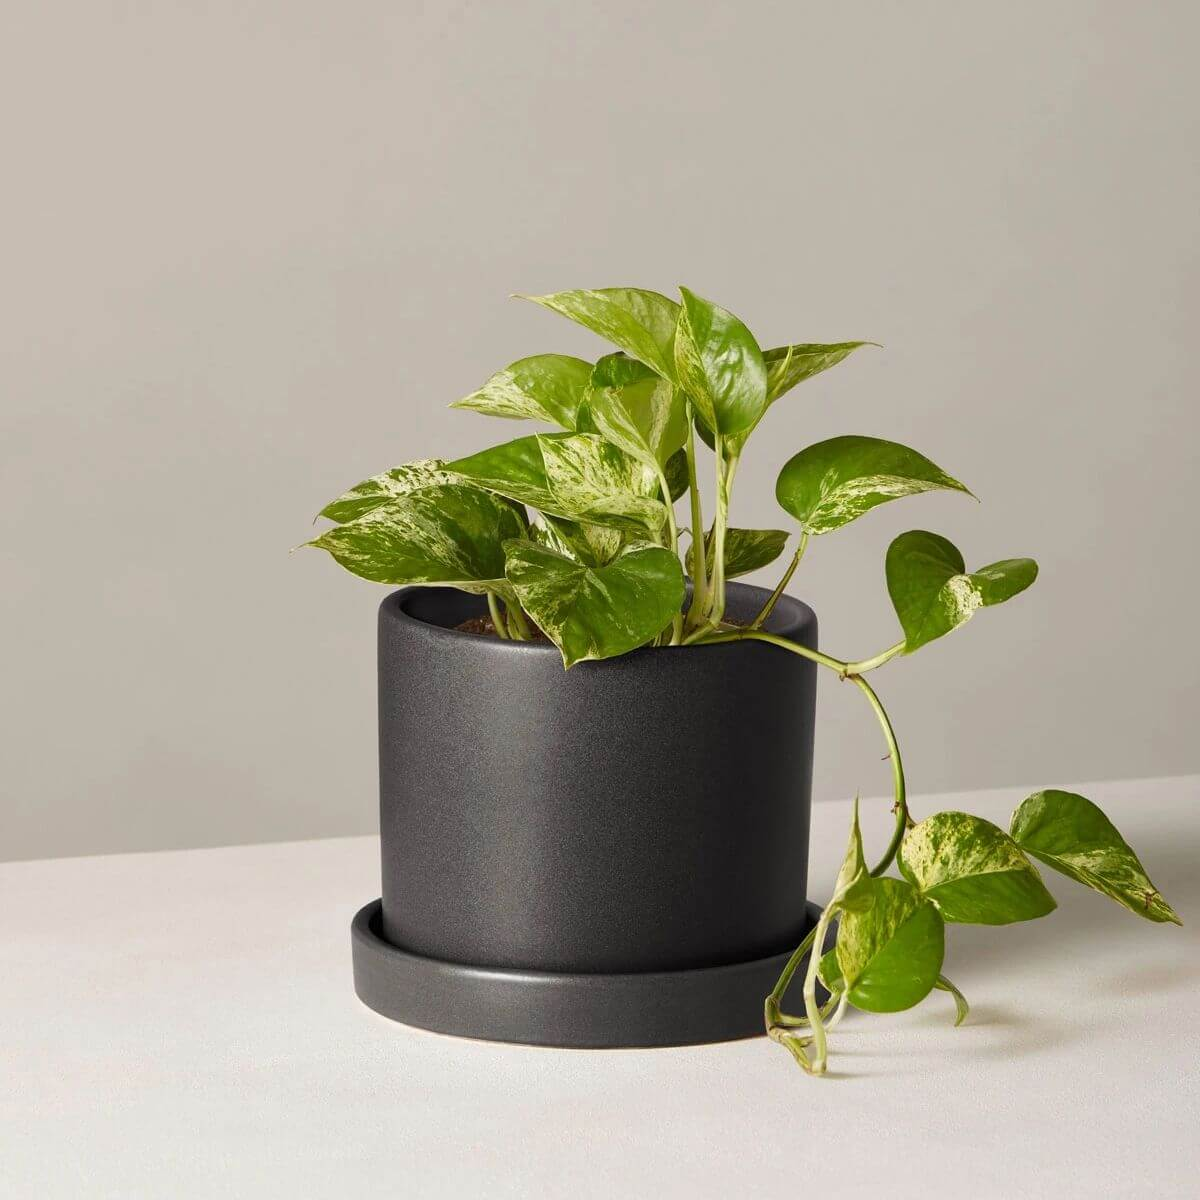 Pothos plant in a black pot.